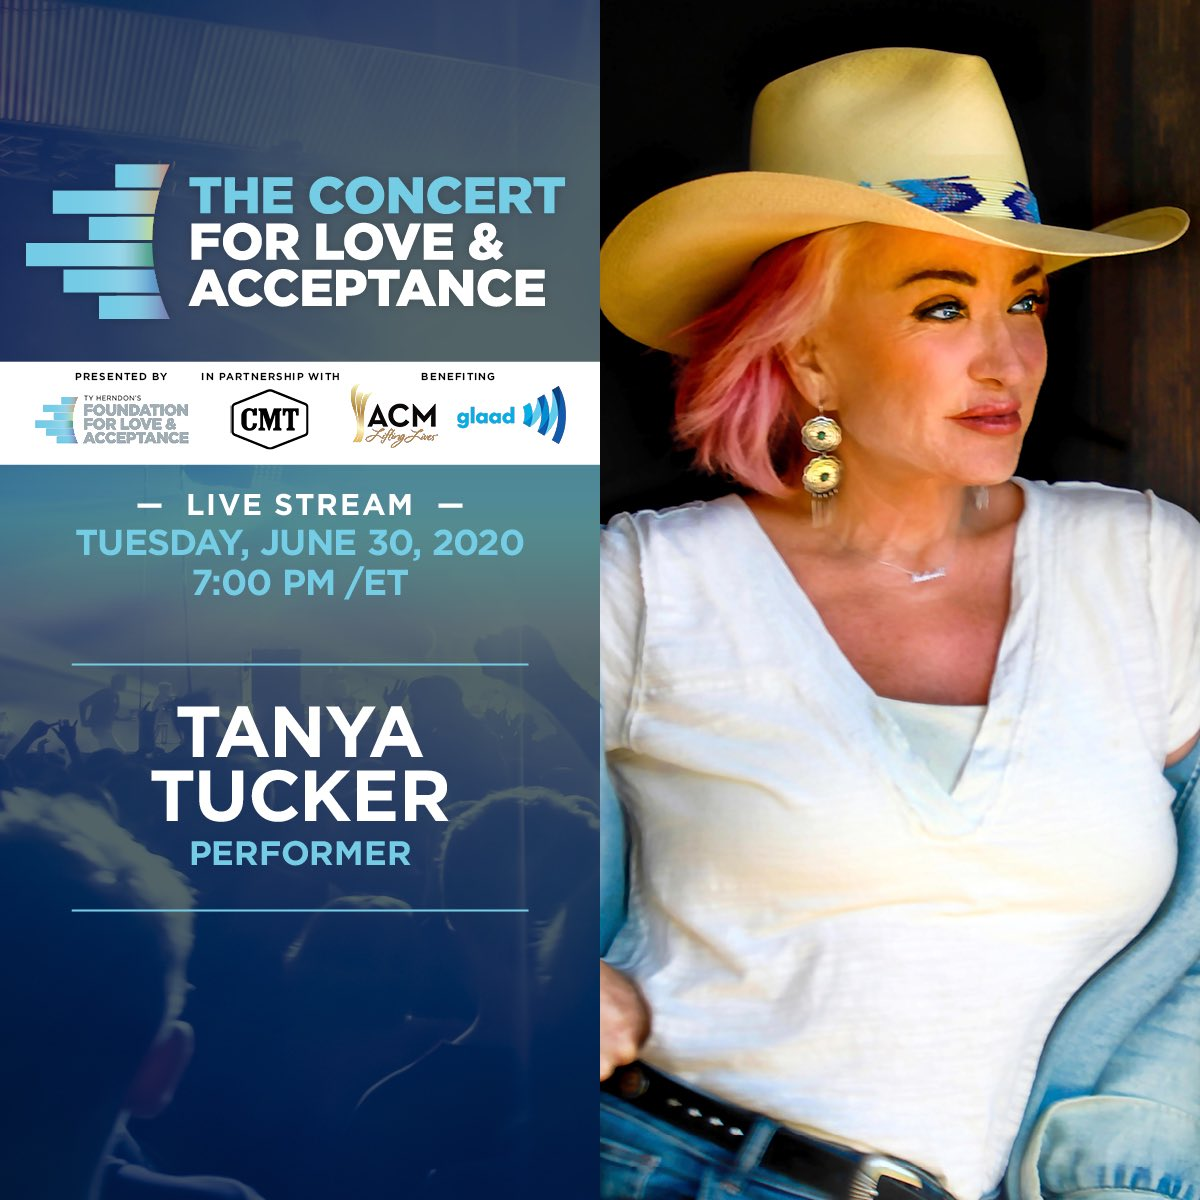 Are y'all ready for @tanyatucker to open the Concert For #LoveAndAcceptance on Tuesday?! Exclusively on @CMT Facebook and YouTube channels. More at https://t.co/rDcSbTf6ve. https://t.co/mQq1apBTGr